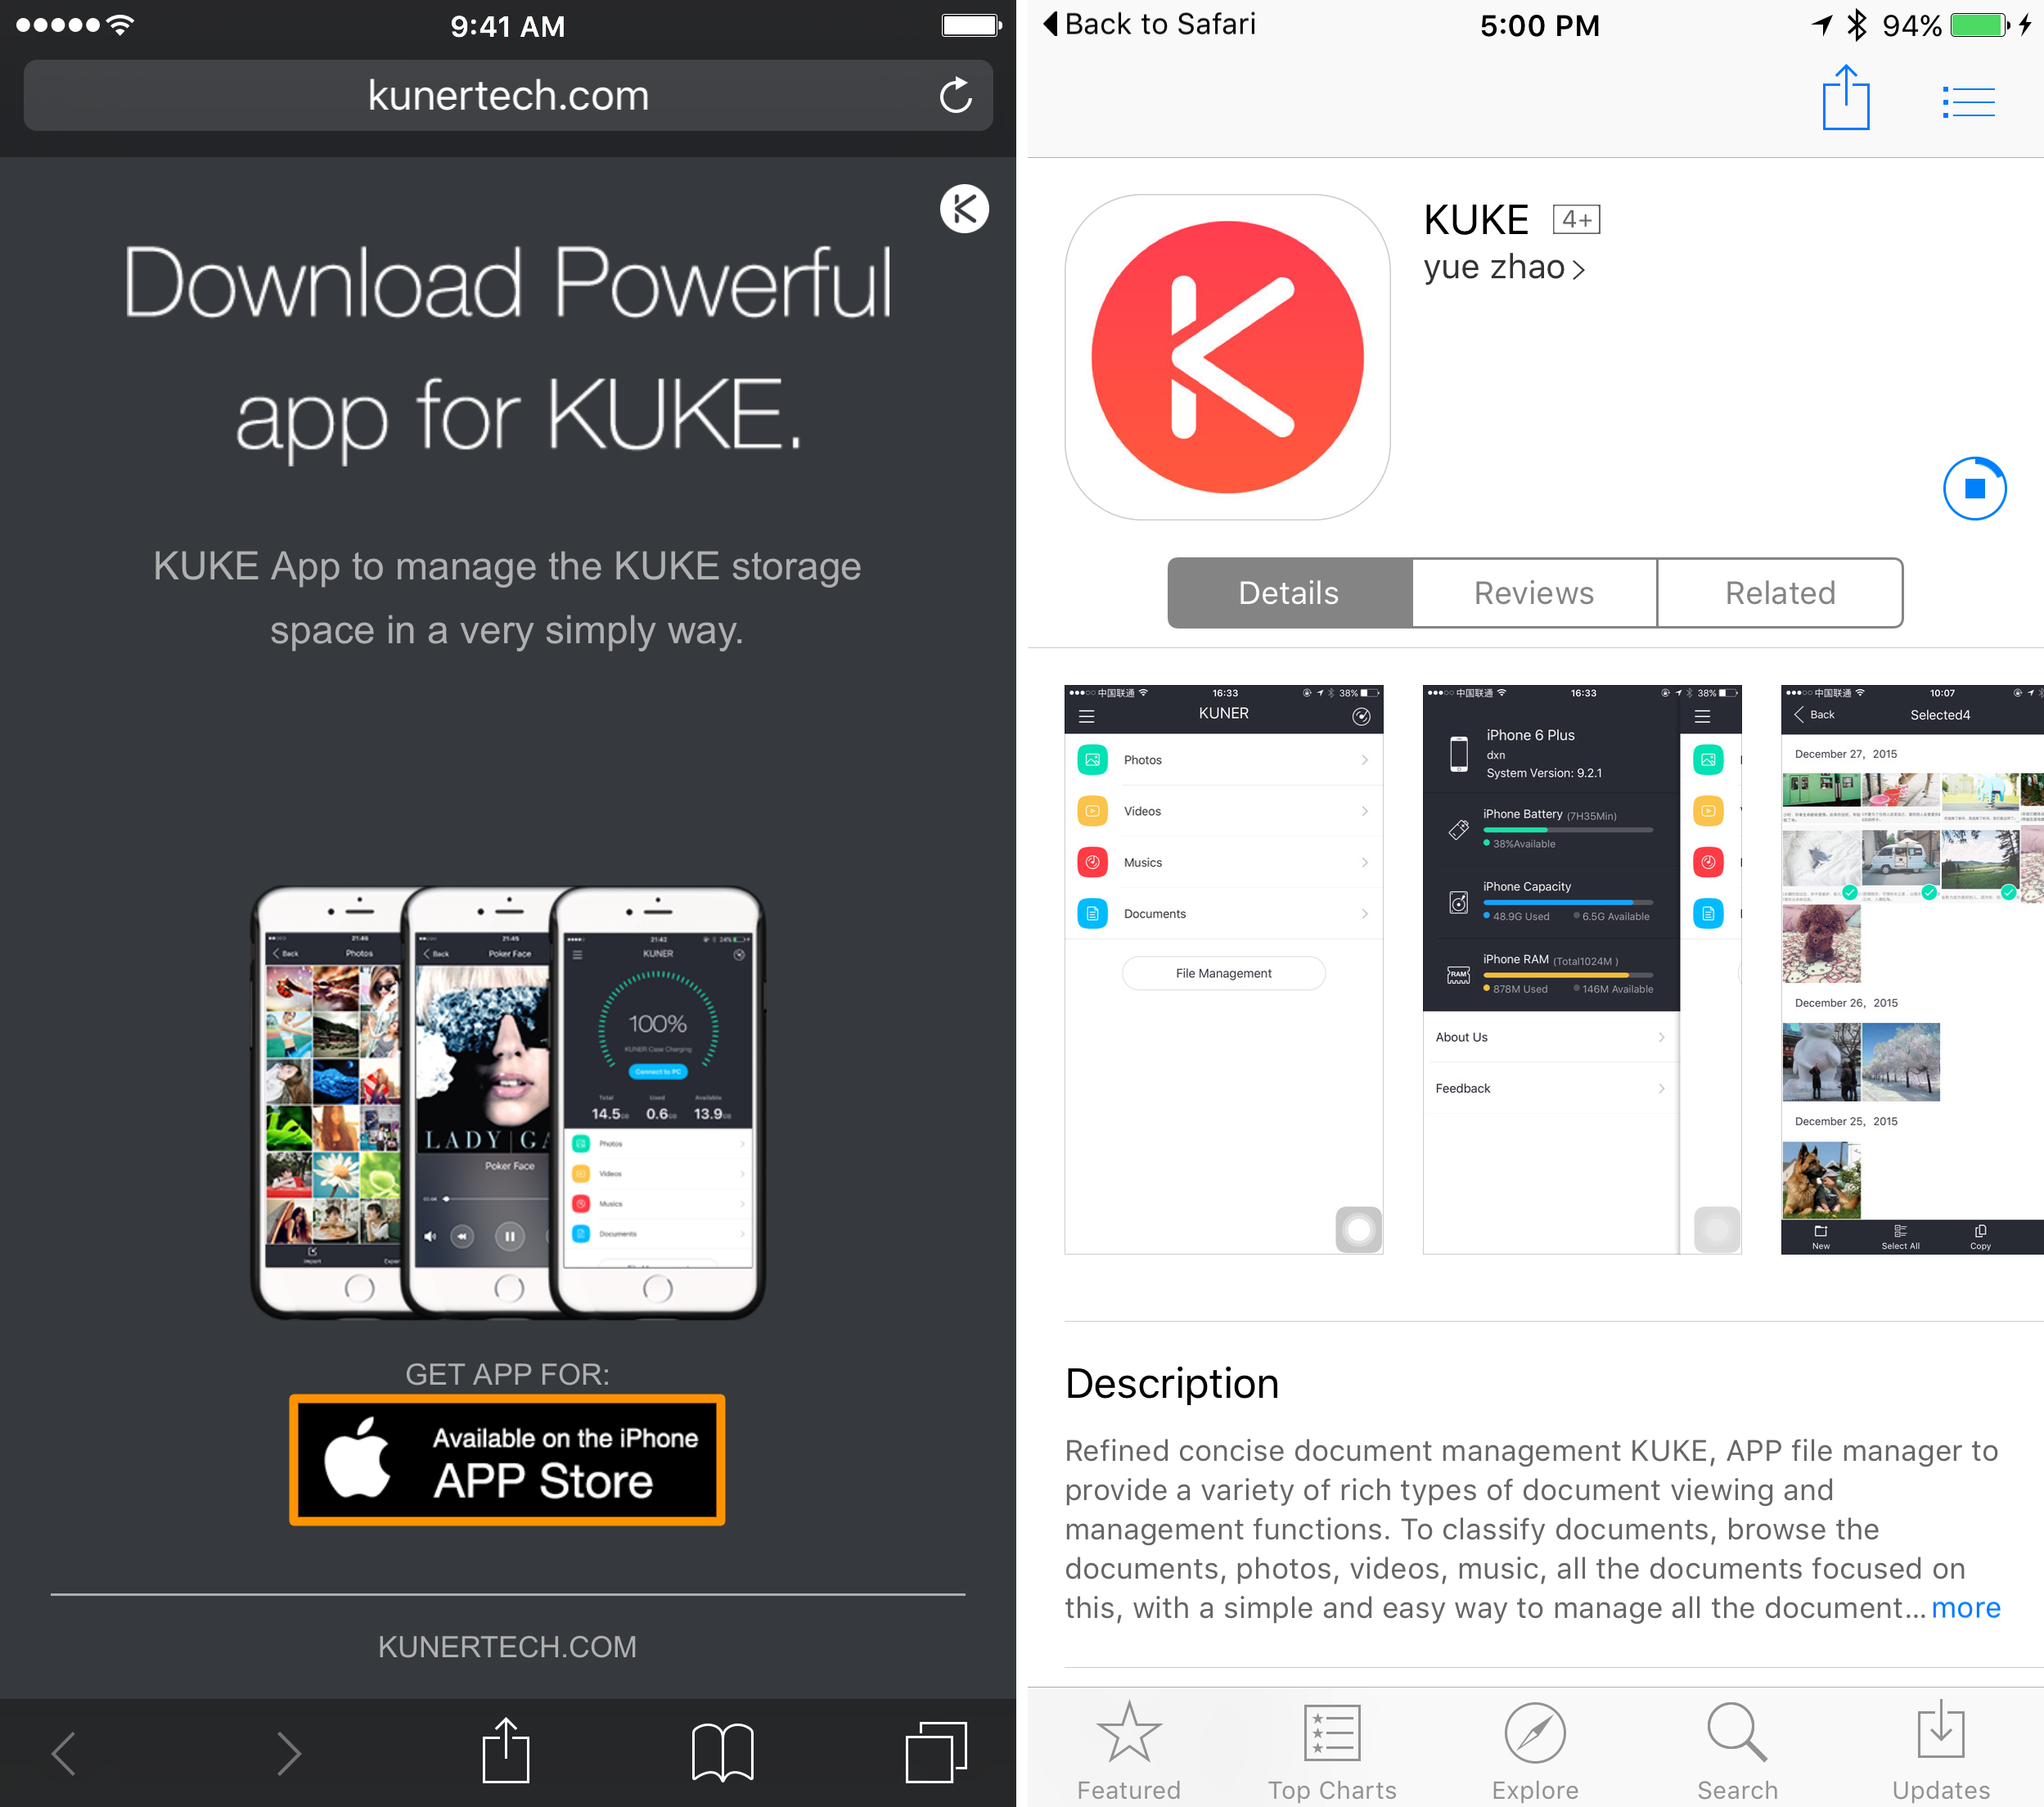 KUKE Download App From the App Store